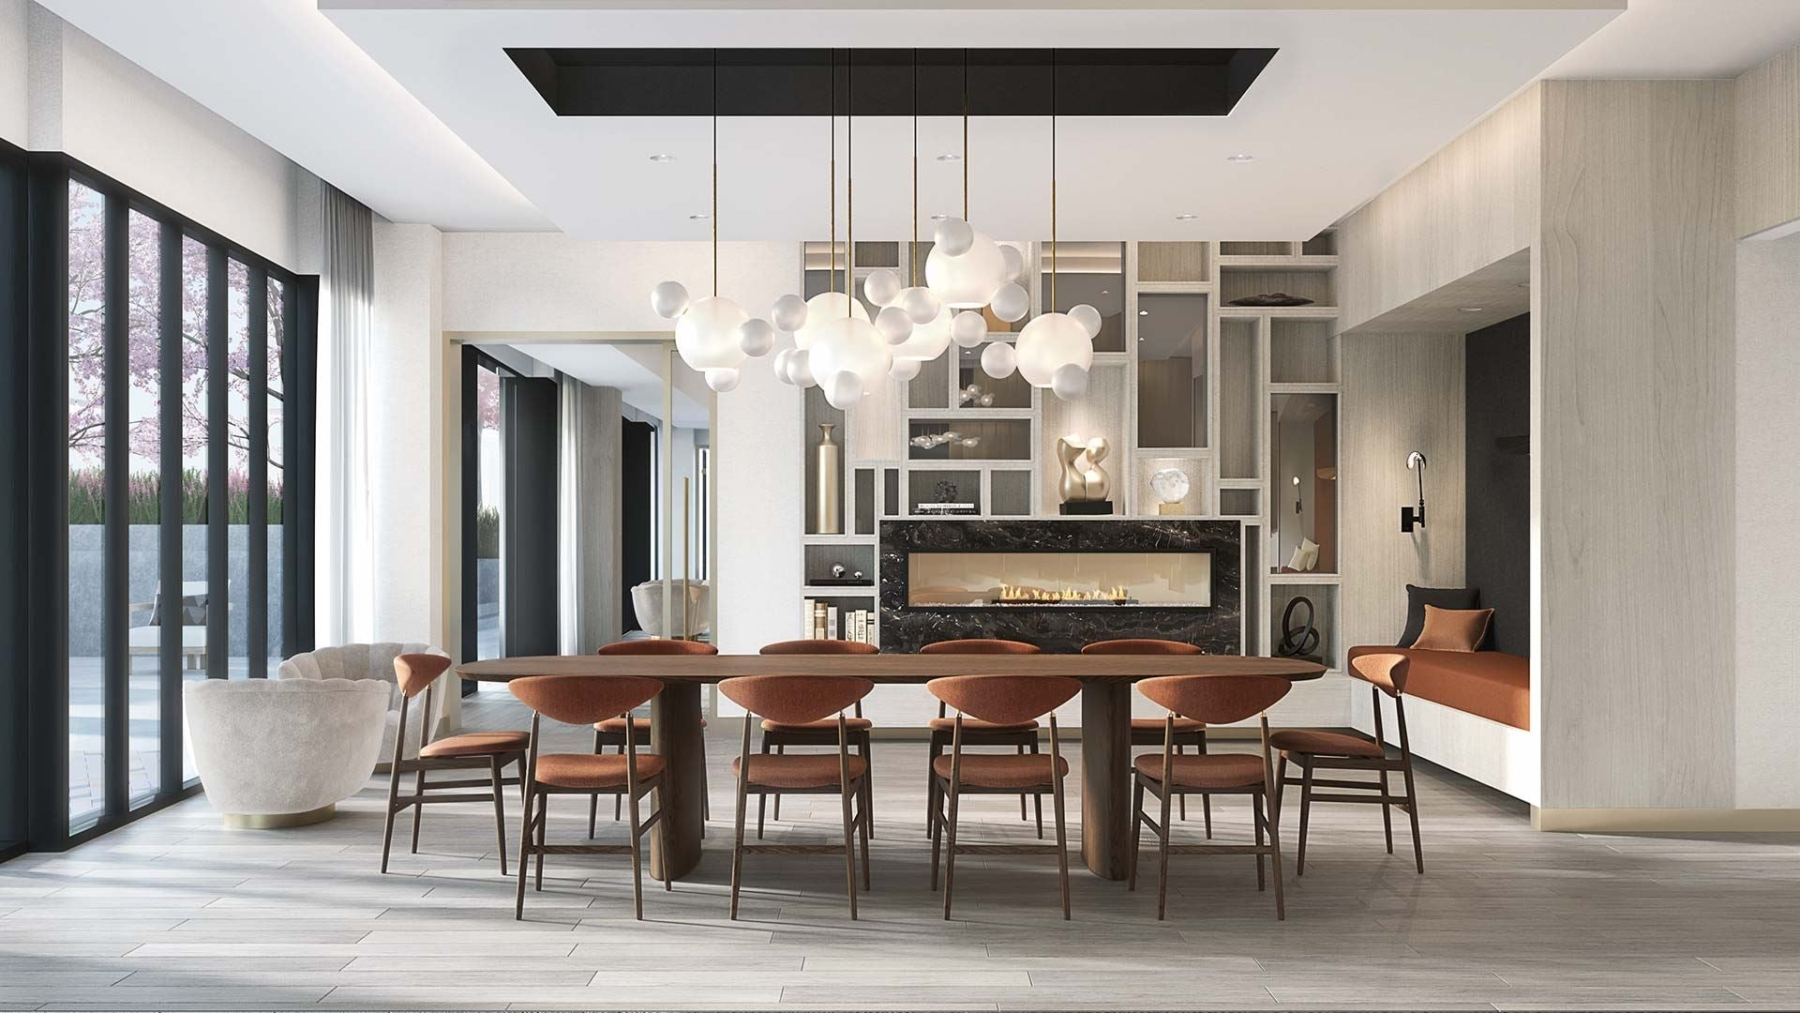 The Dupont Condos private dining space